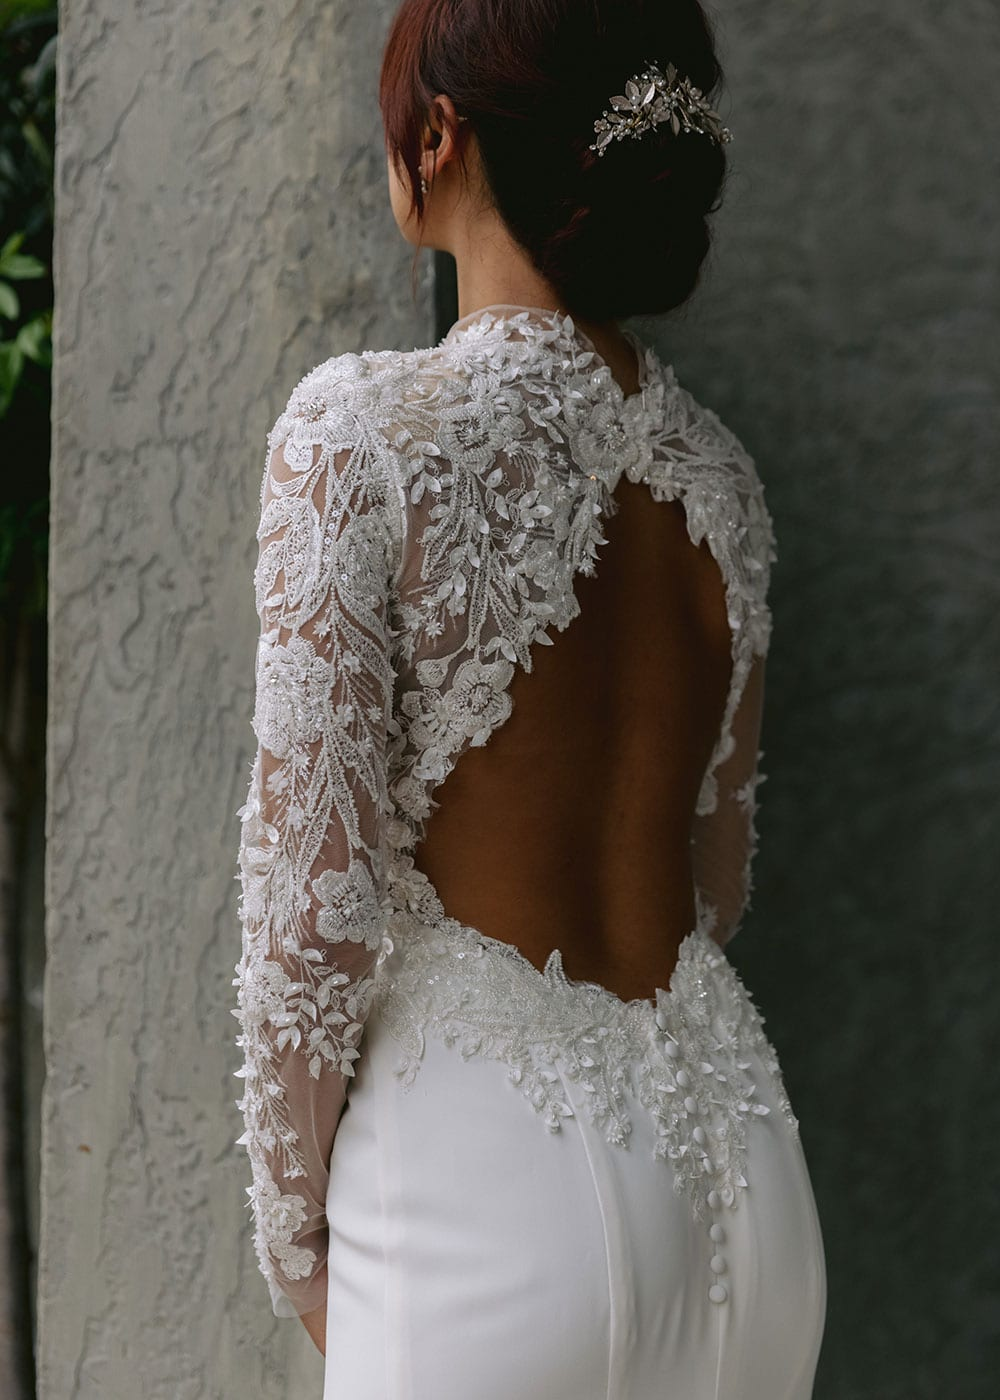 Moana Wedding gown from Vinka Design - Spectacular wedding dress perfect for the modern bride who still wants a classic spark! 3D lace embroidery complemented by a high neckline, fitted sleeves, and stunning low back into a flare train. Model wearing gown showing open back and 3D lace detail.